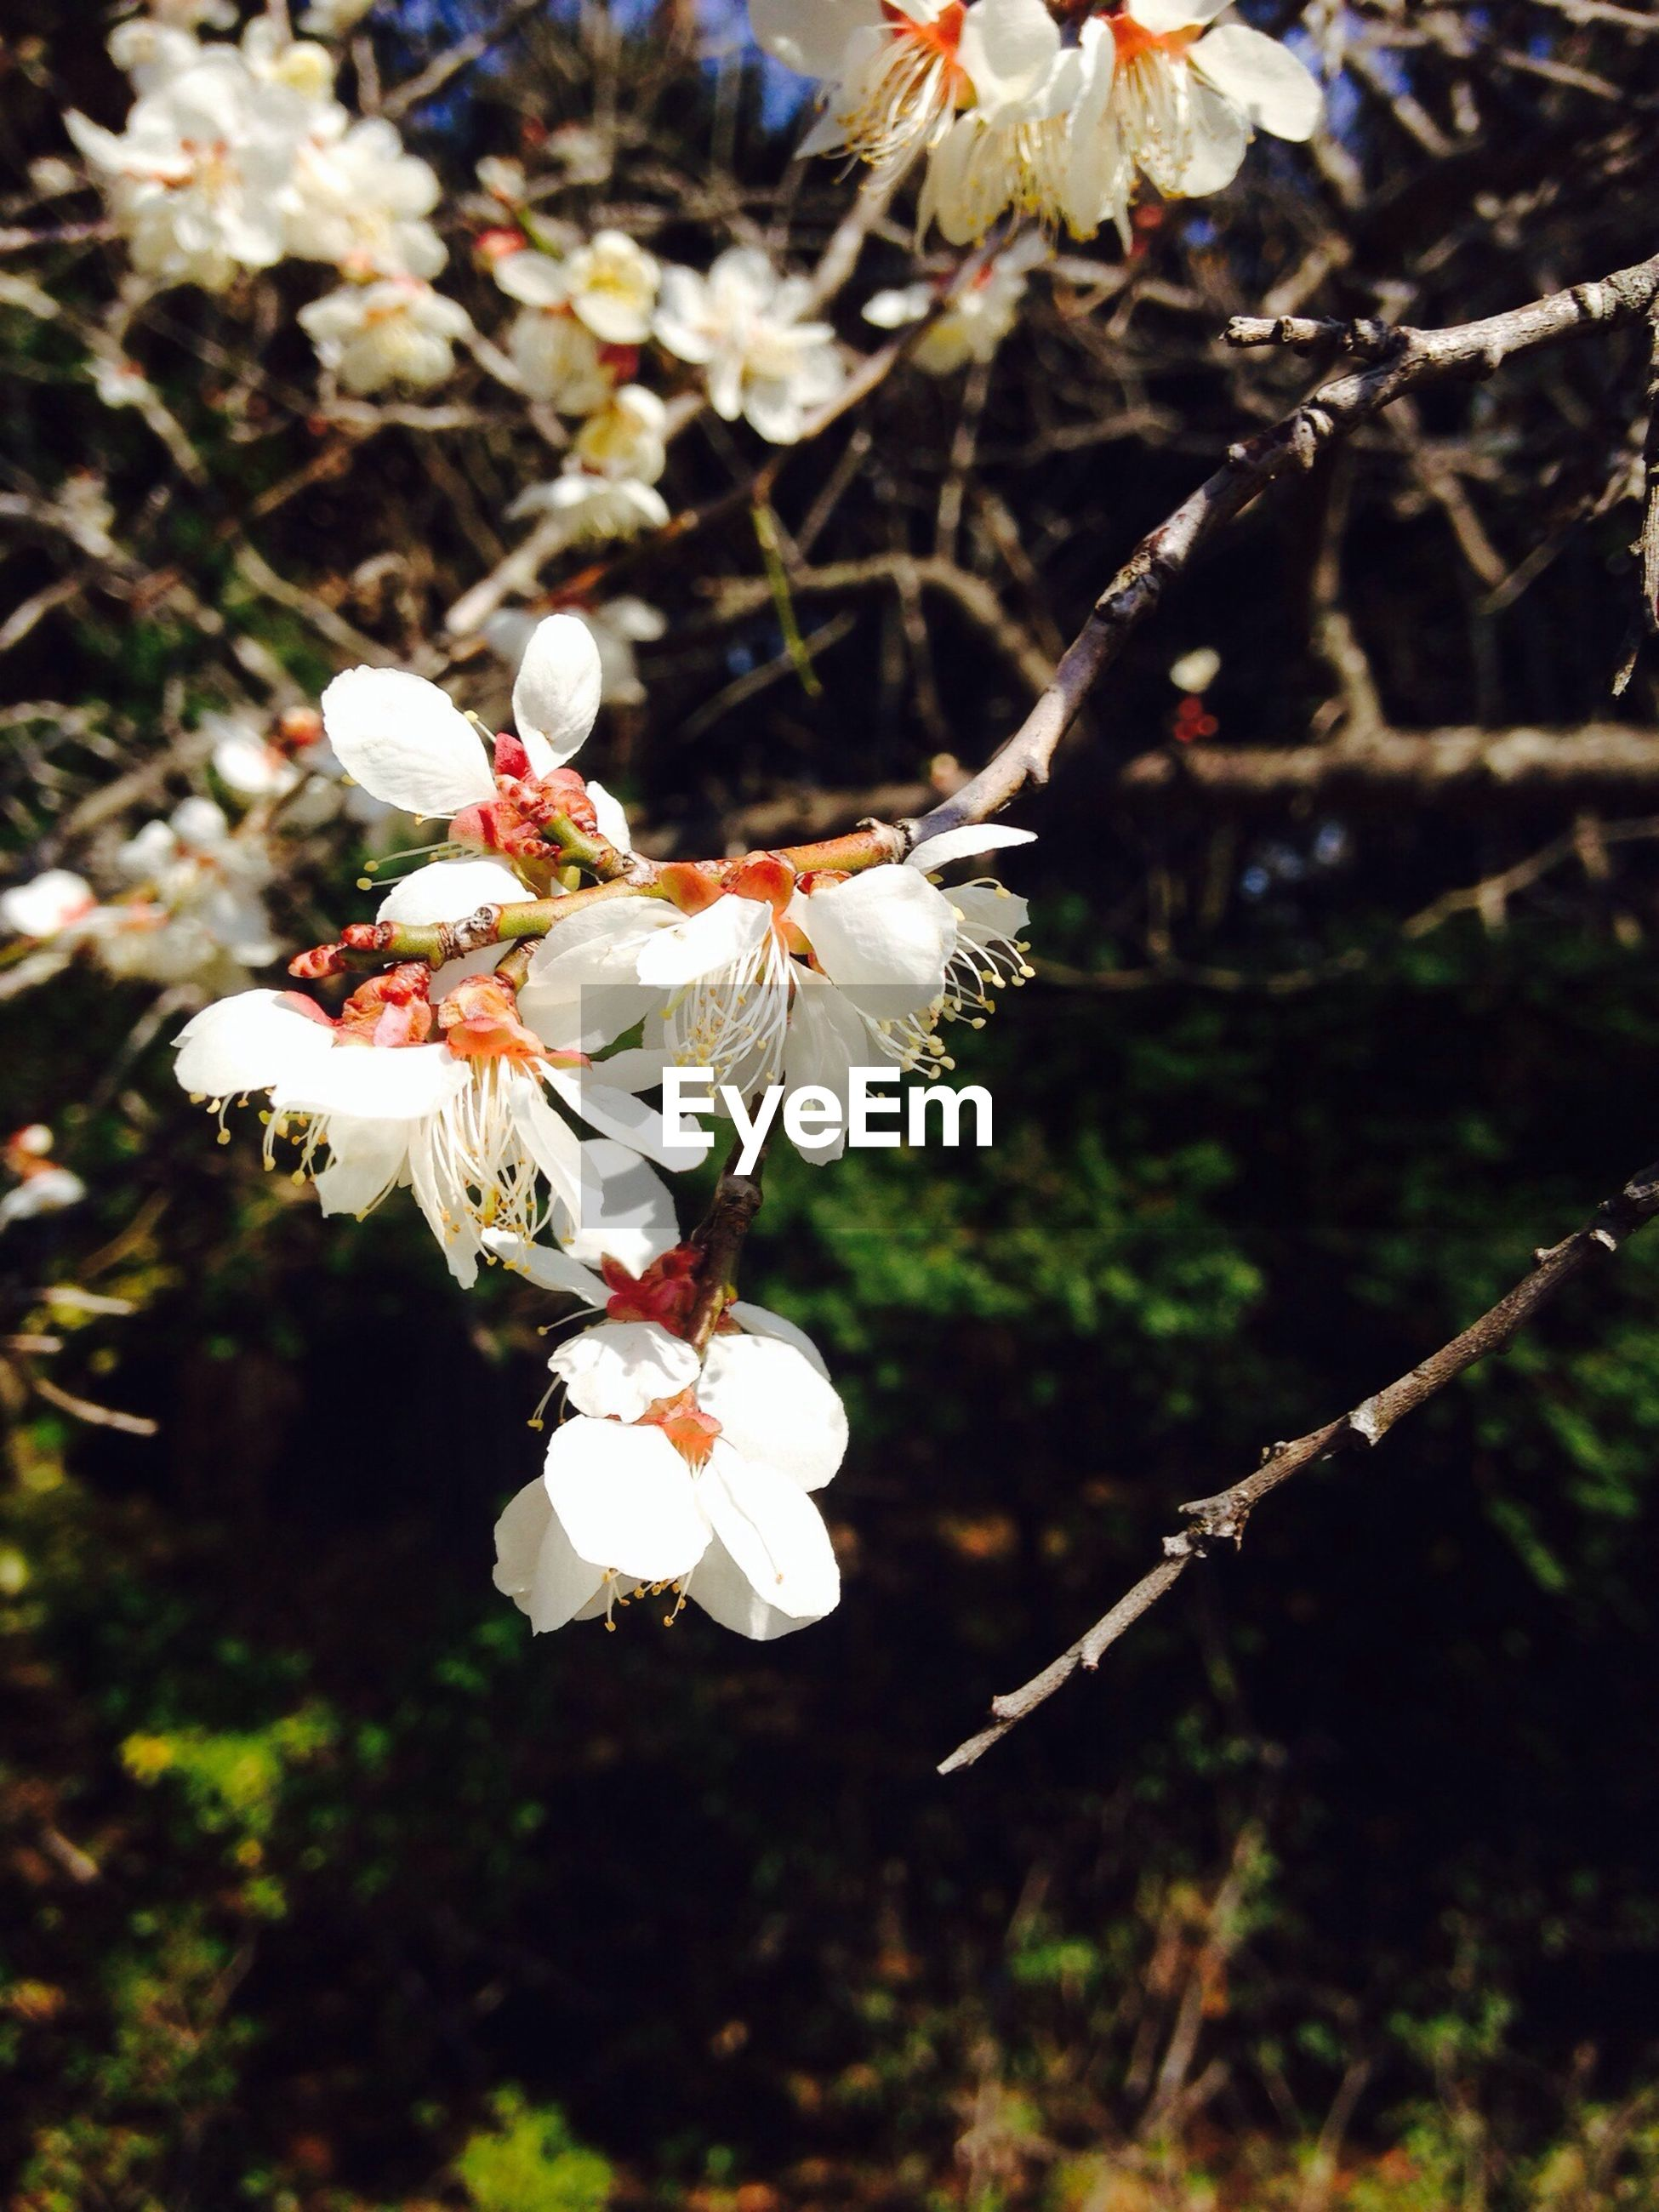 flower, freshness, fragility, growth, petal, white color, beauty in nature, focus on foreground, nature, branch, tree, close-up, blossom, flower head, blooming, in bloom, cherry blossom, twig, stamen, pollen